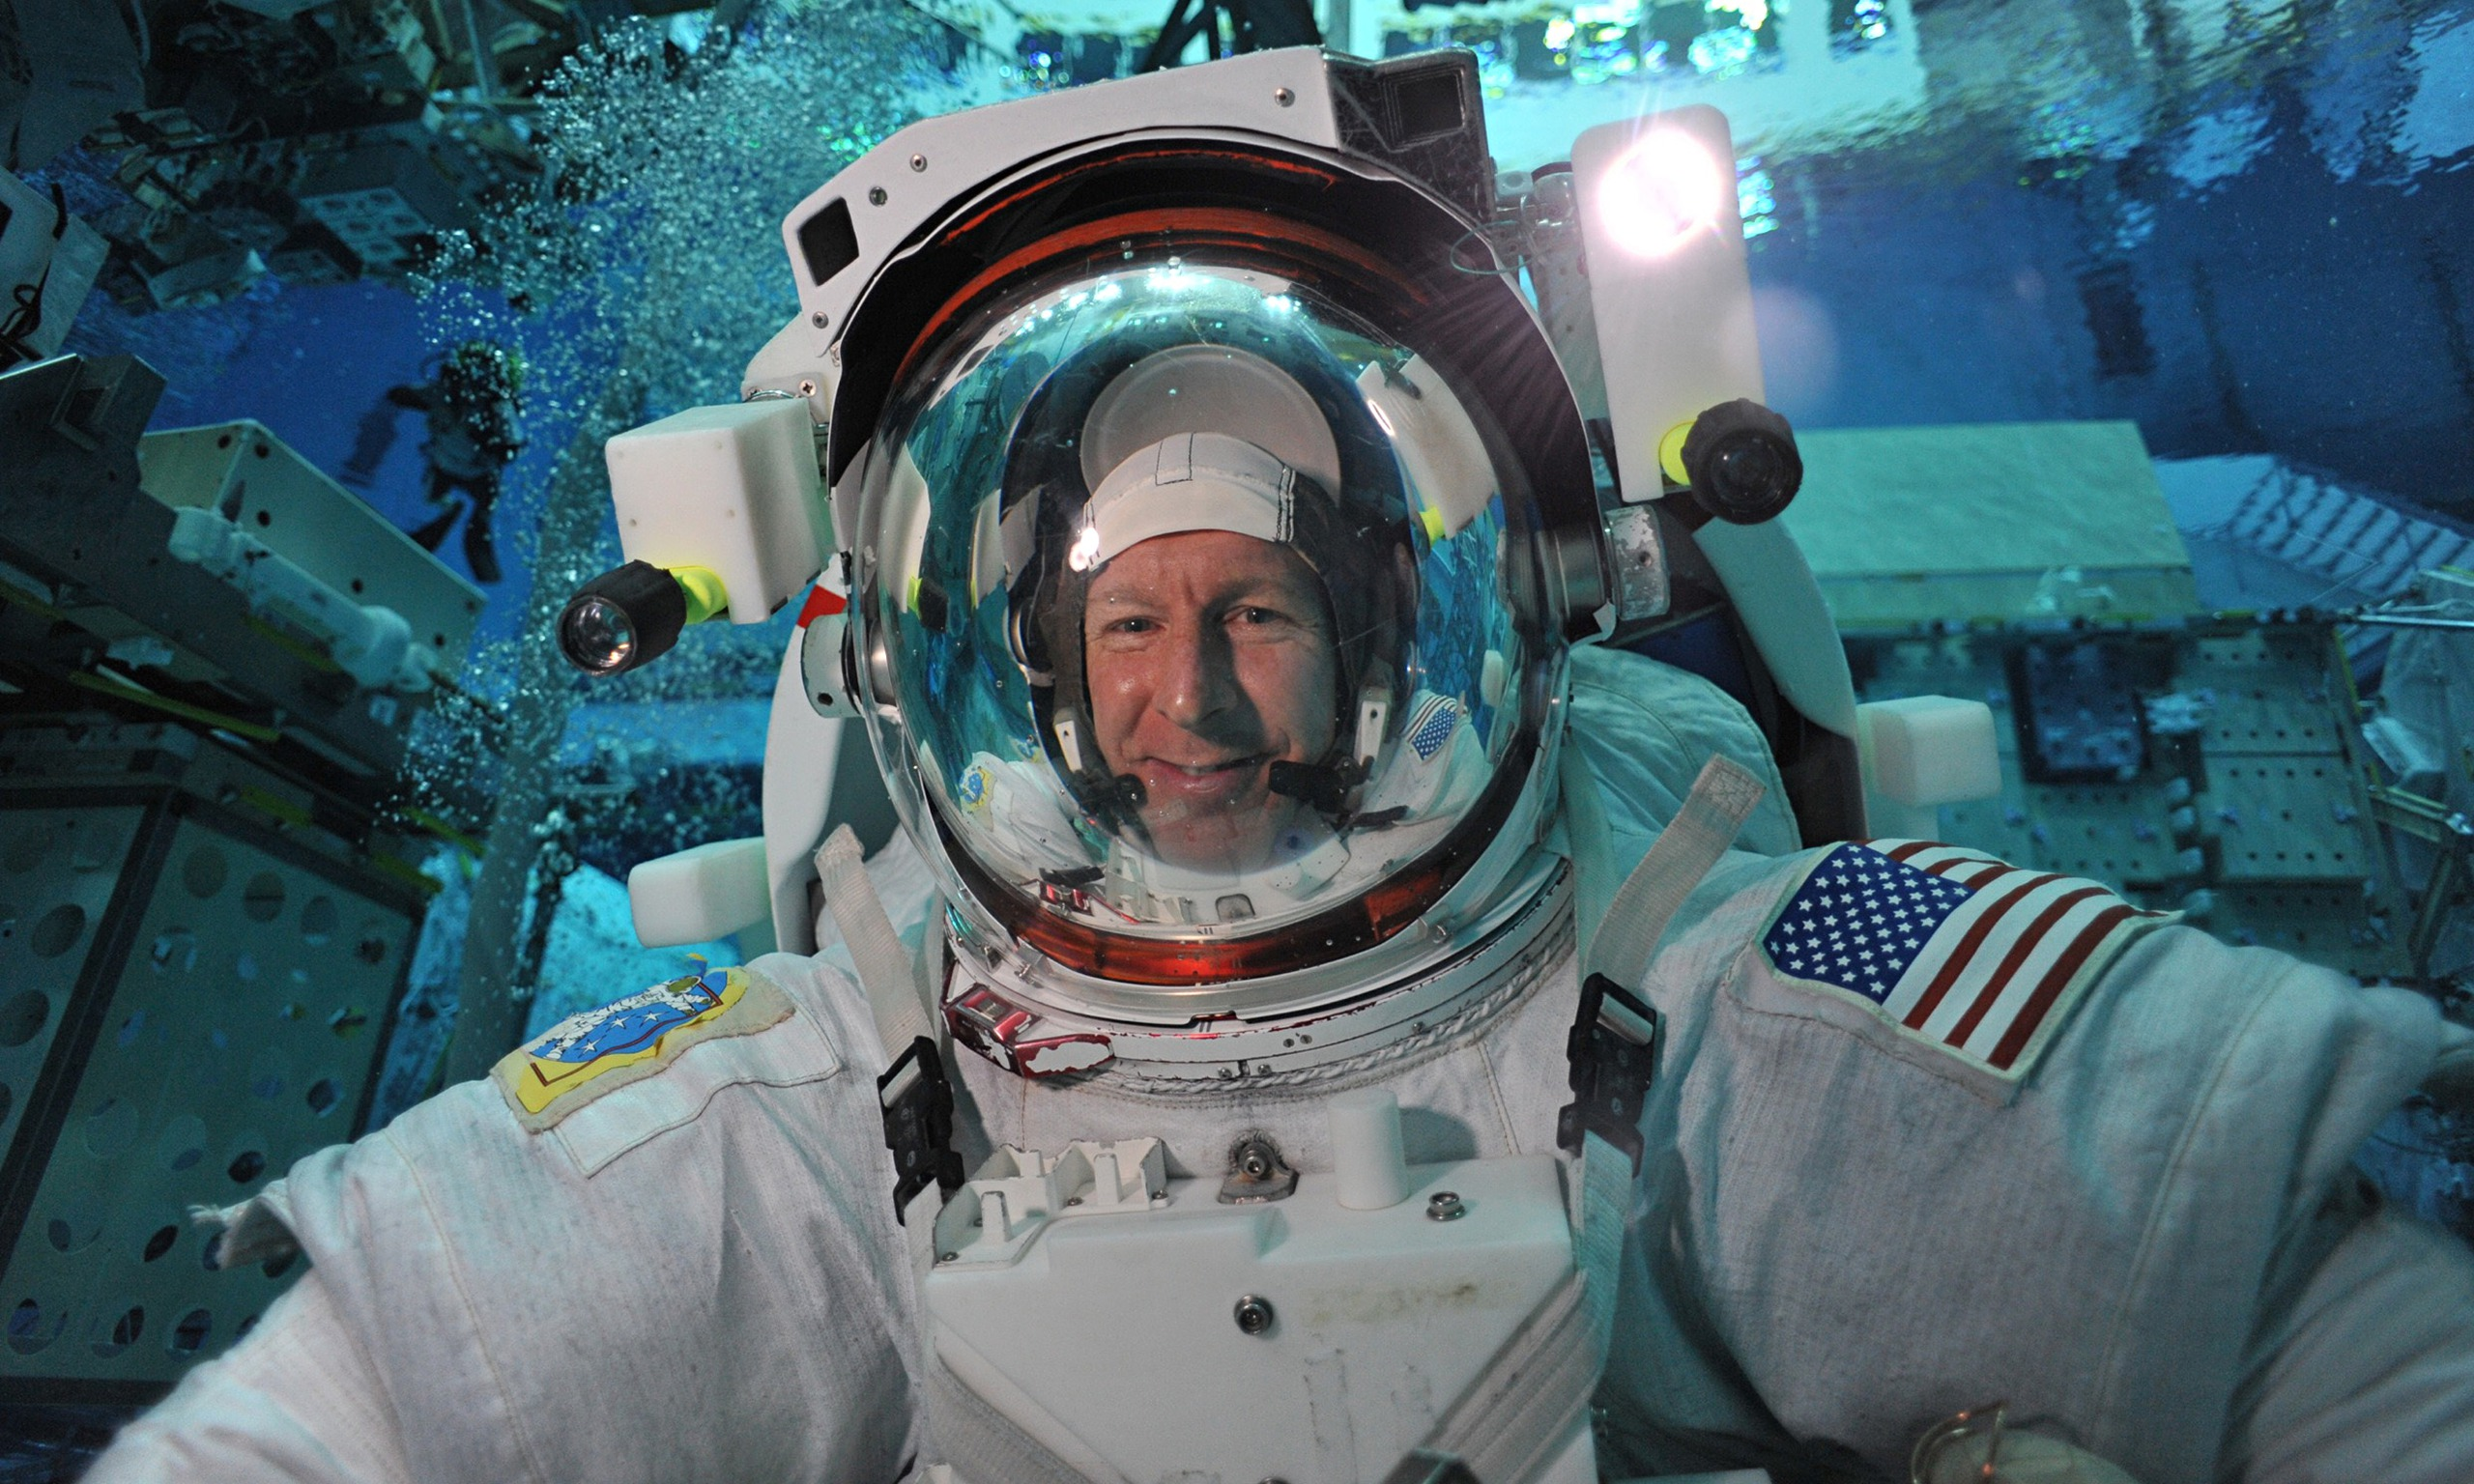 Hogan Uk First British Man In Space: 'we Phone People Because It's